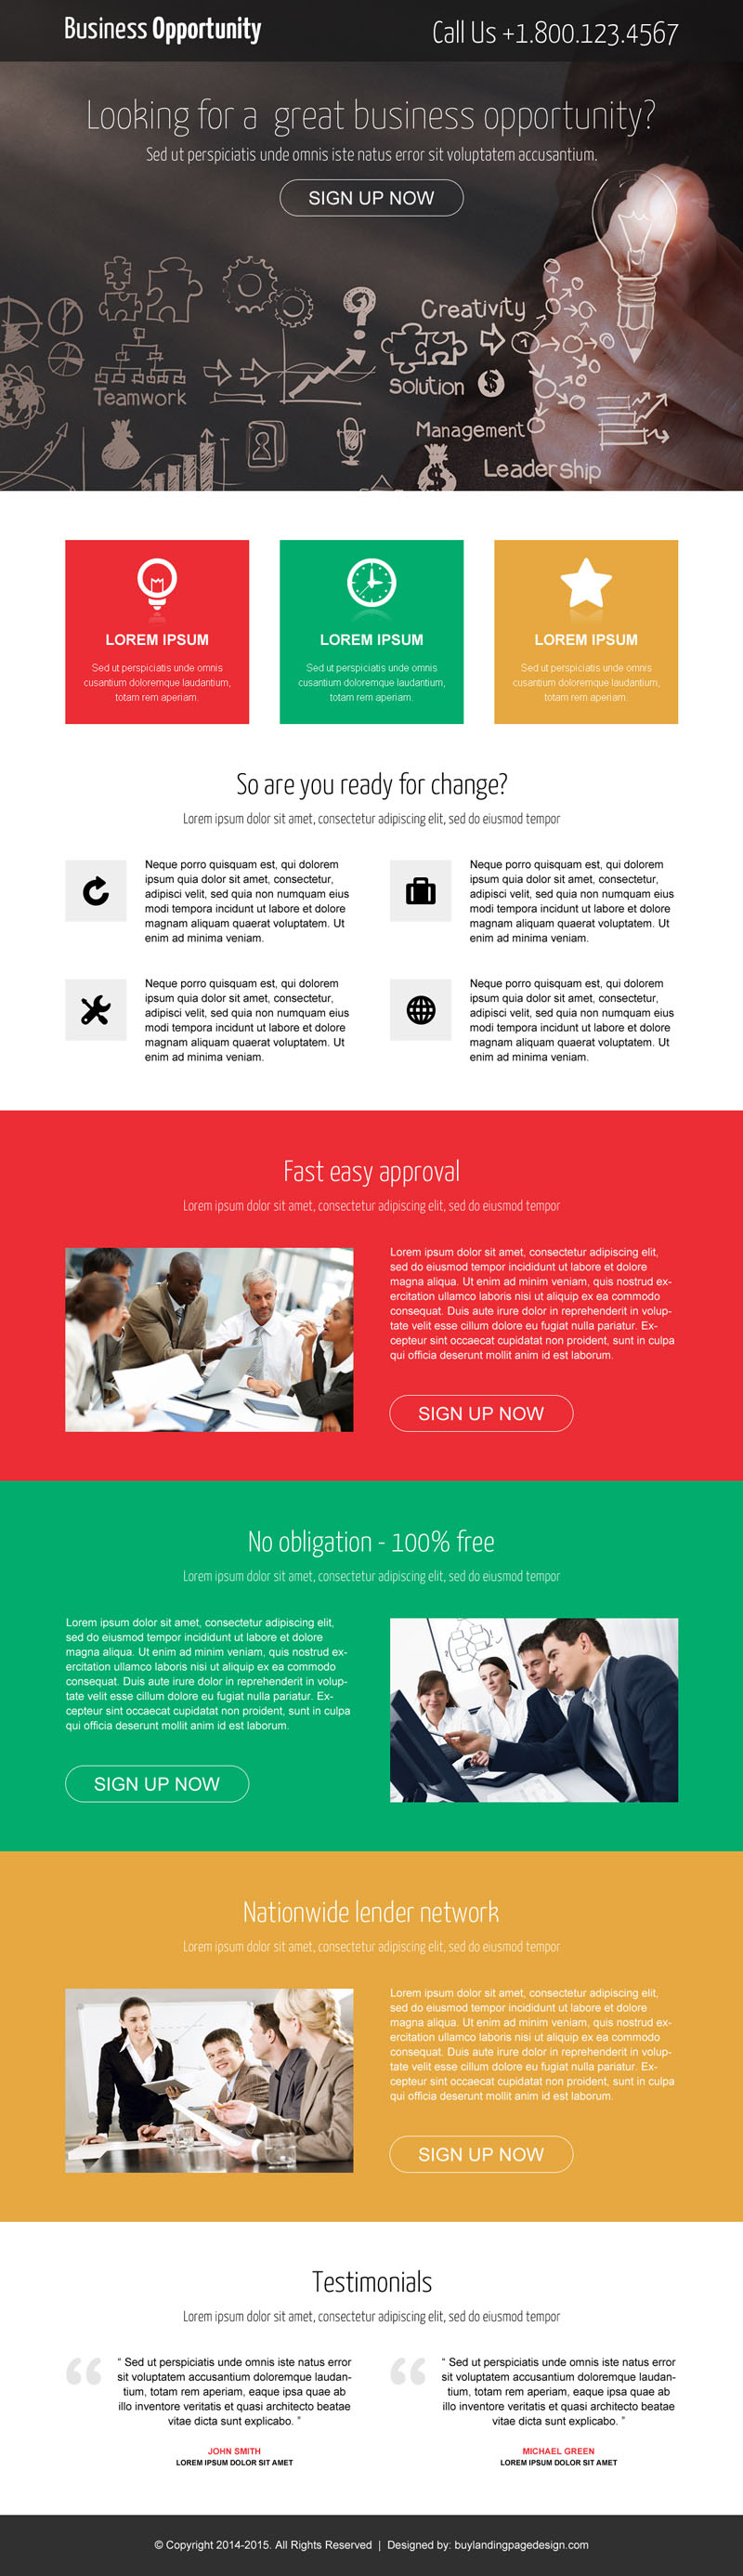 great-business-opportunity-call-to-action-landing-page-design-template-028